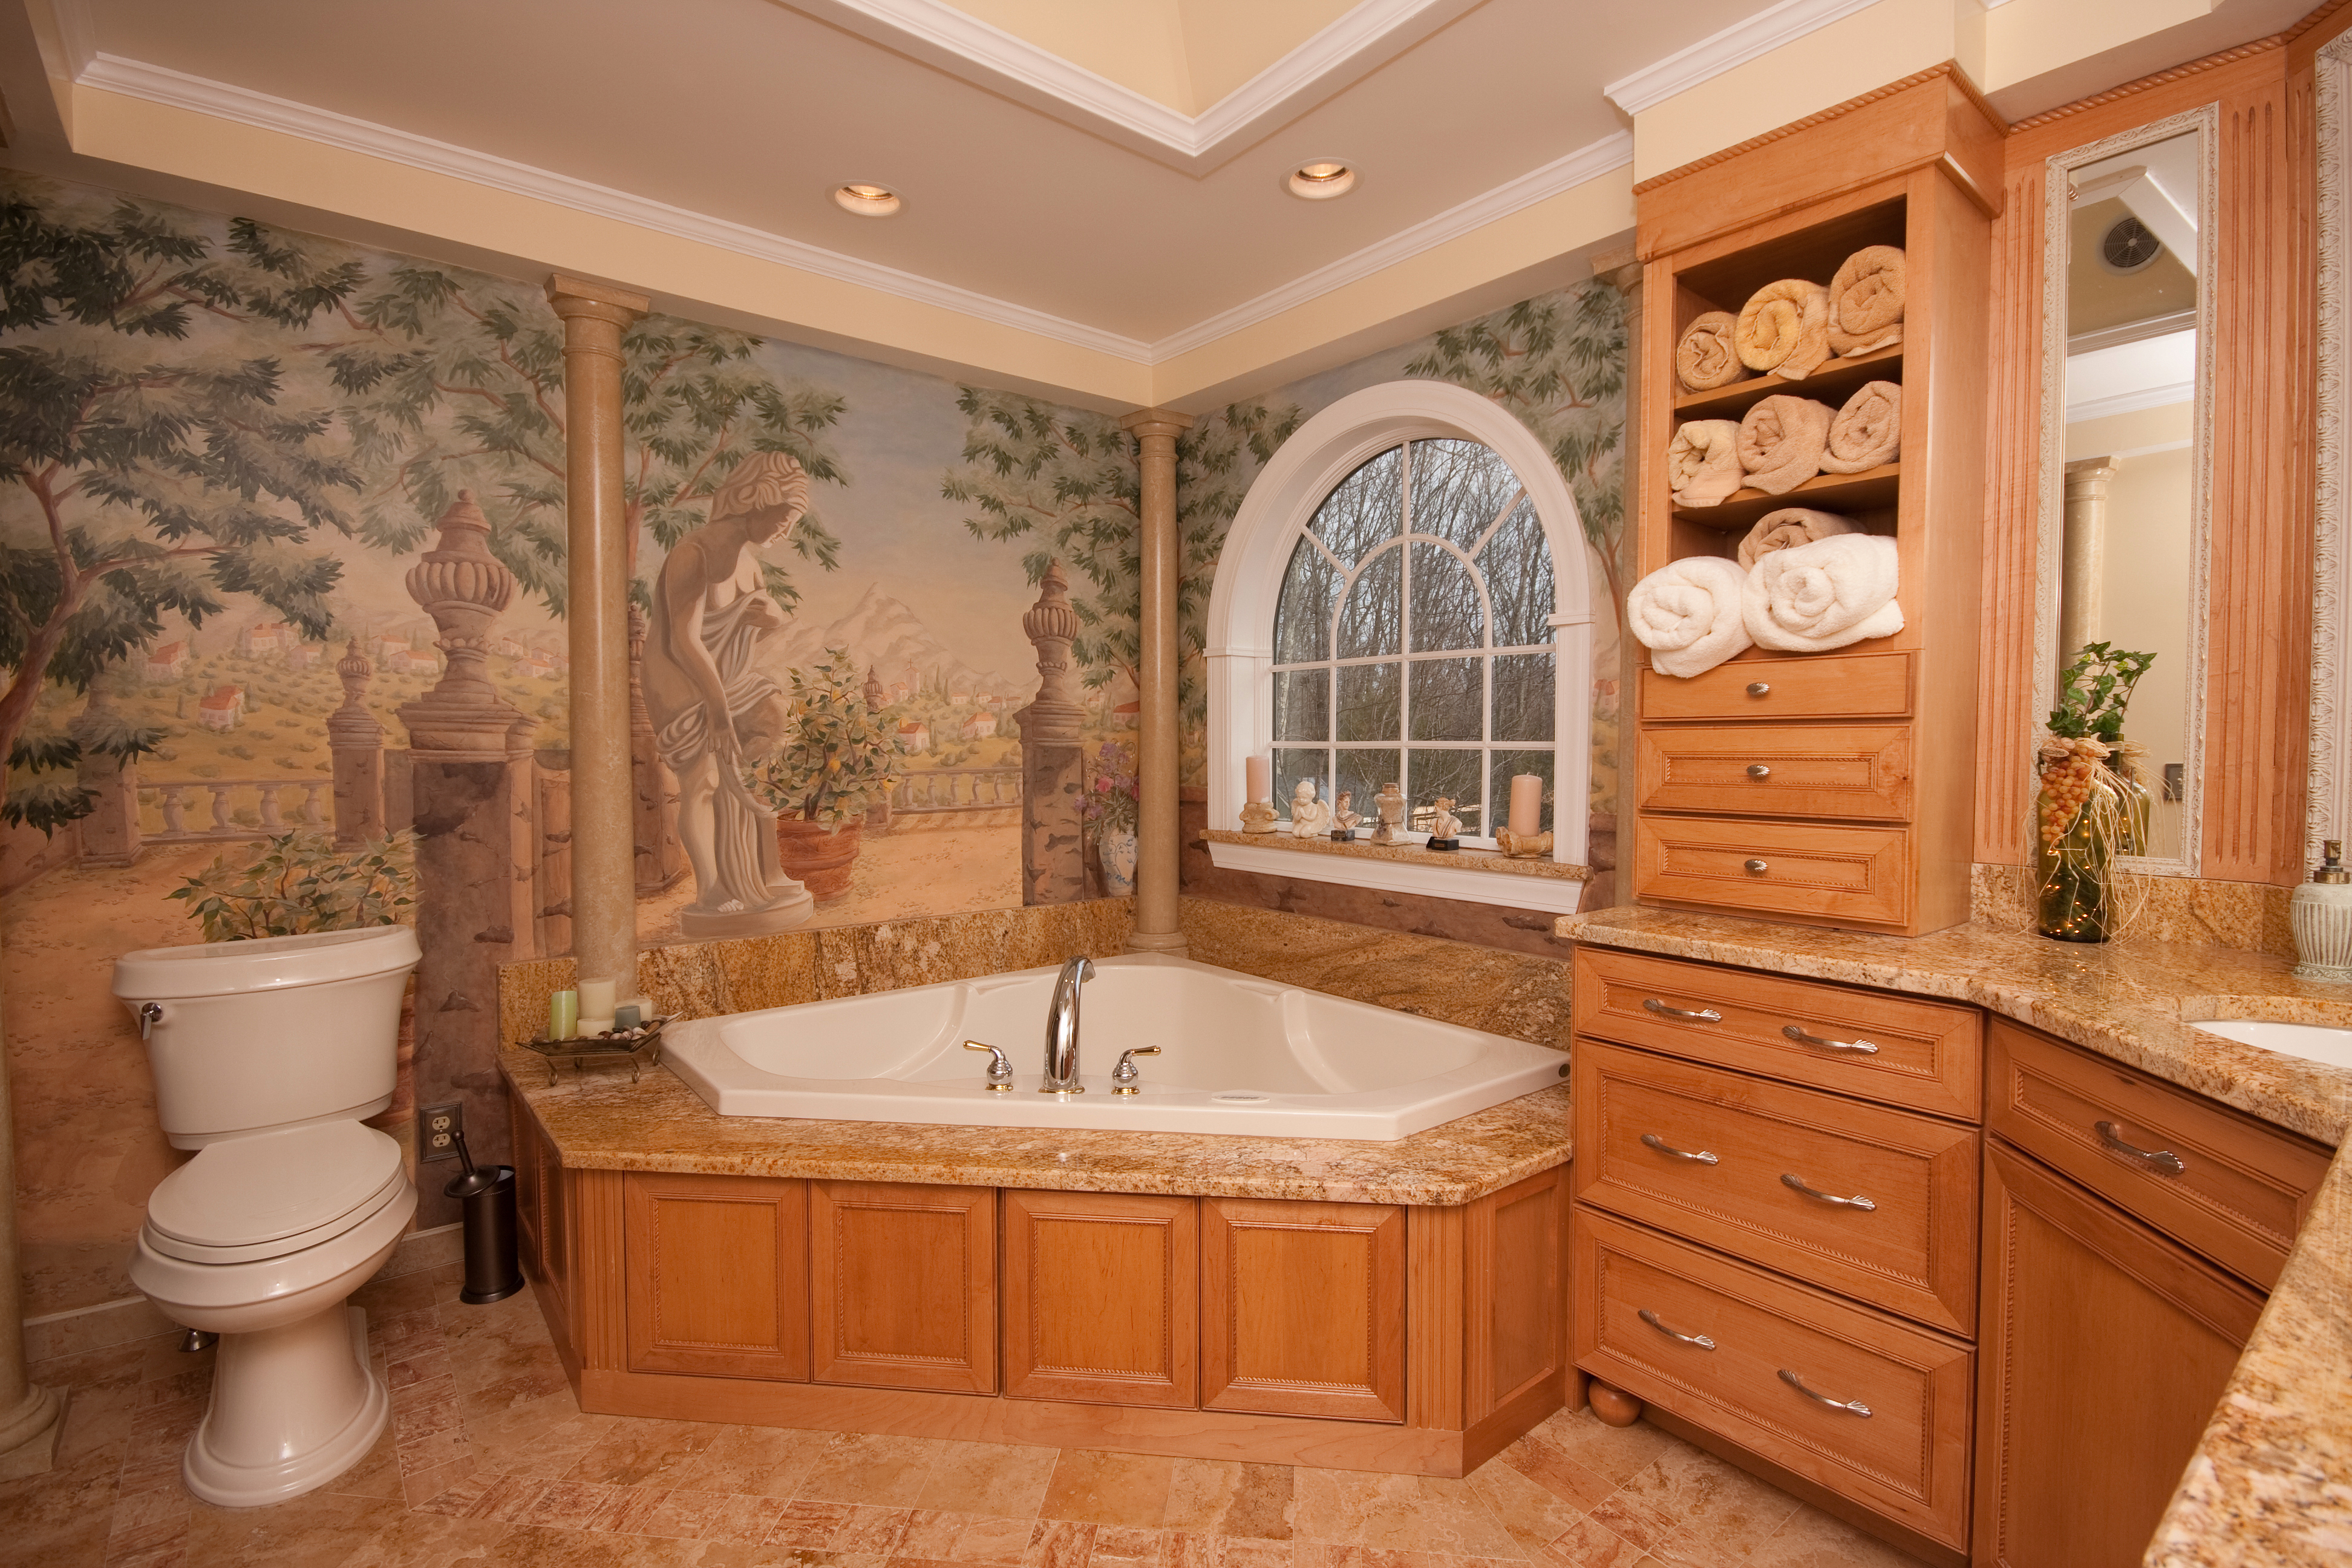 Bathroom renovation in Milford PA